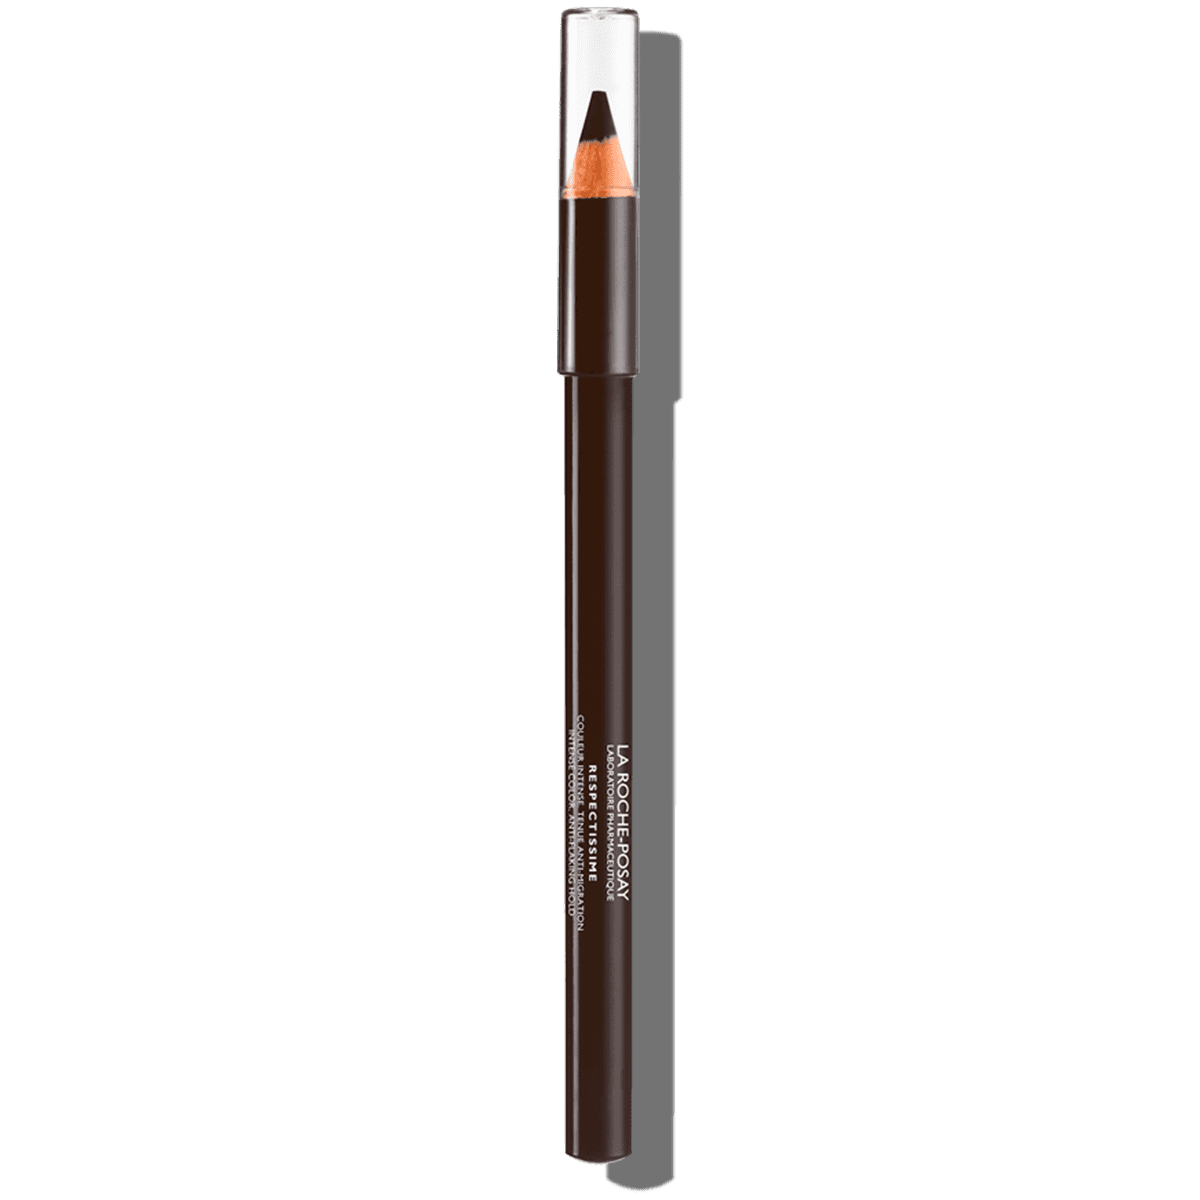 La Roche Posay Sensitive Toleriane Make up EYE_PENCIL Brown 3337872410